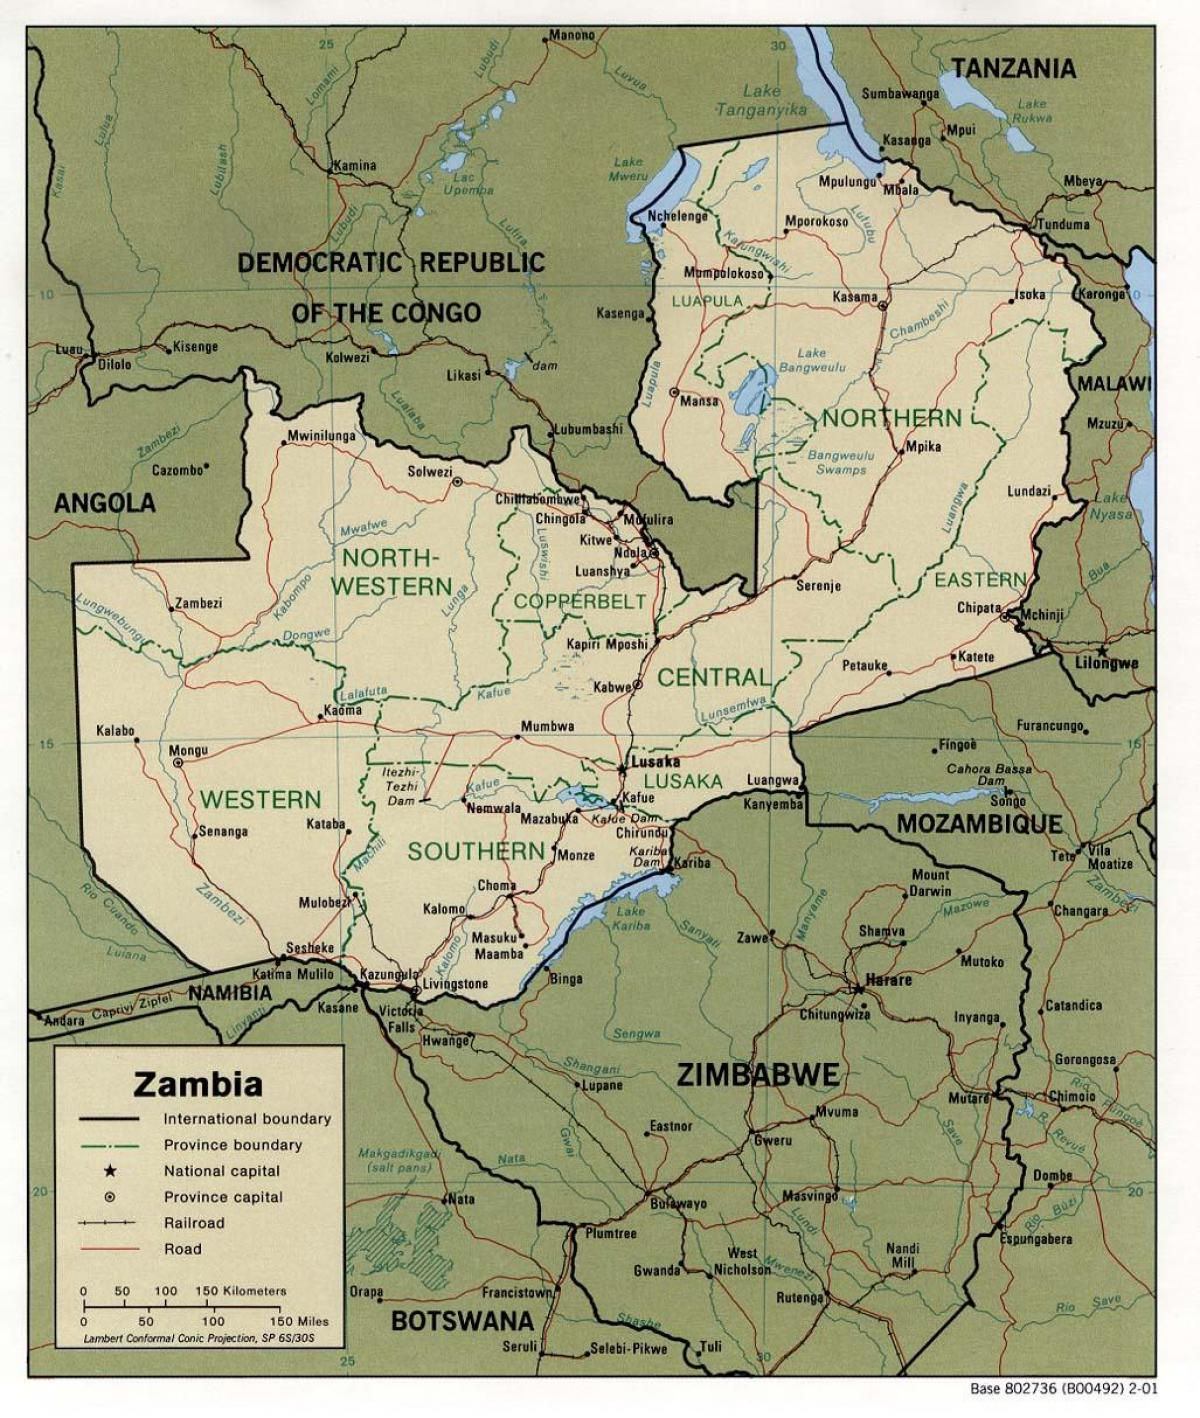 Zambia physical features map